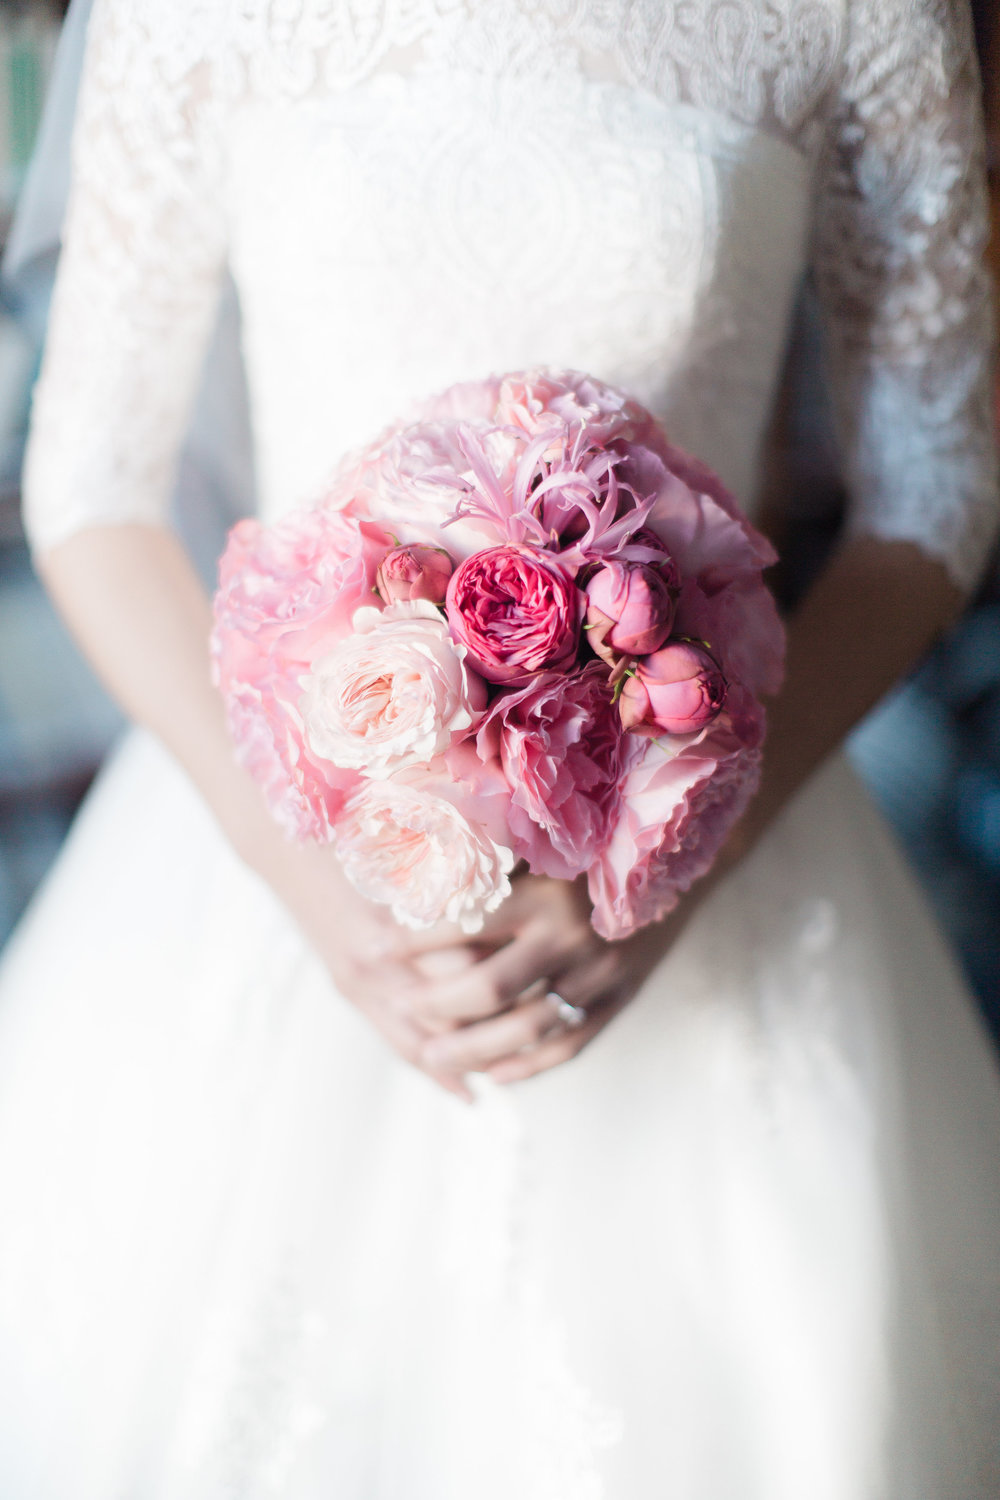 Bride holding her bouqet of pink flowers